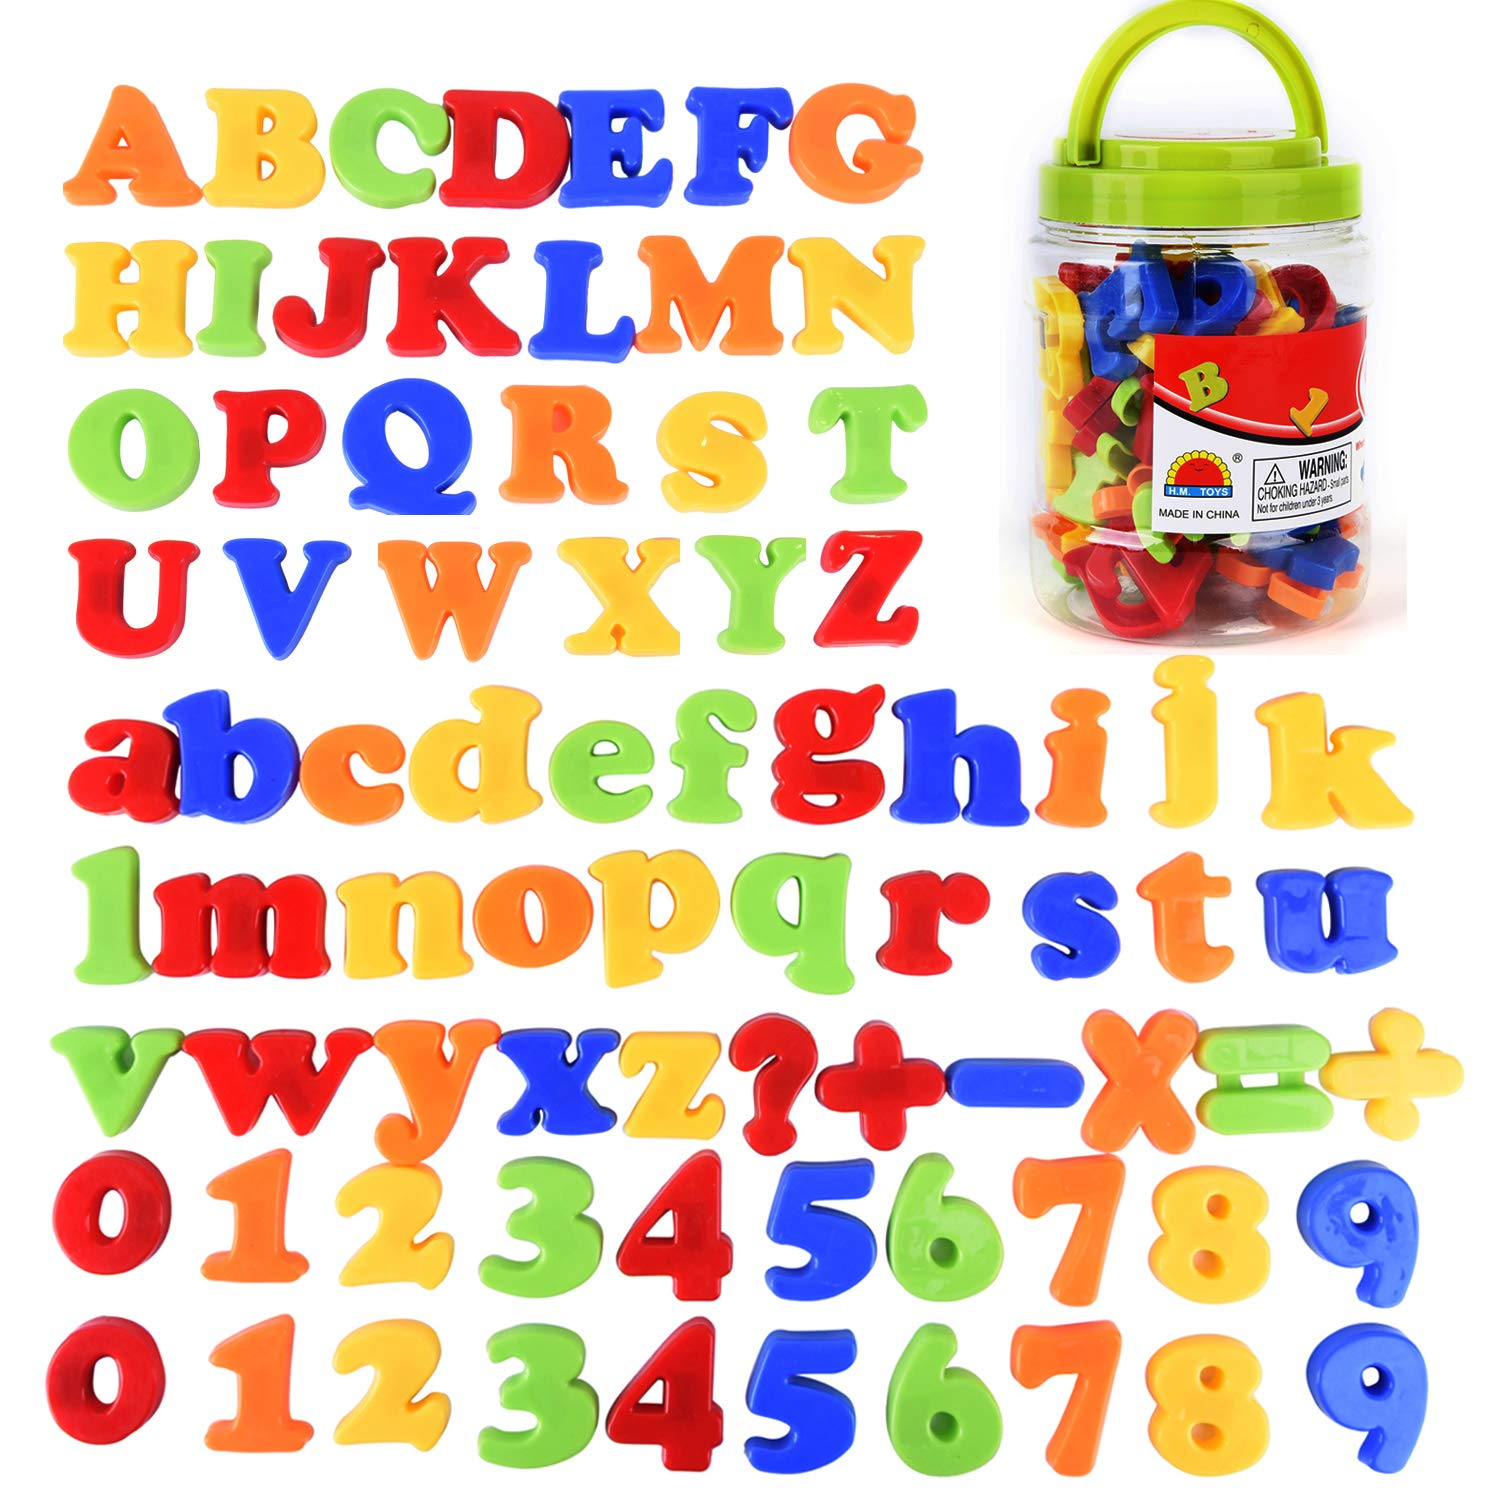 Number and Math Symbols Buytra 78 Pieces Magnetic Letters and Numbers for Educating Kids Educational Alphabet Refrigerator Magnets ABC Magnets Including Uppercase Lowercase